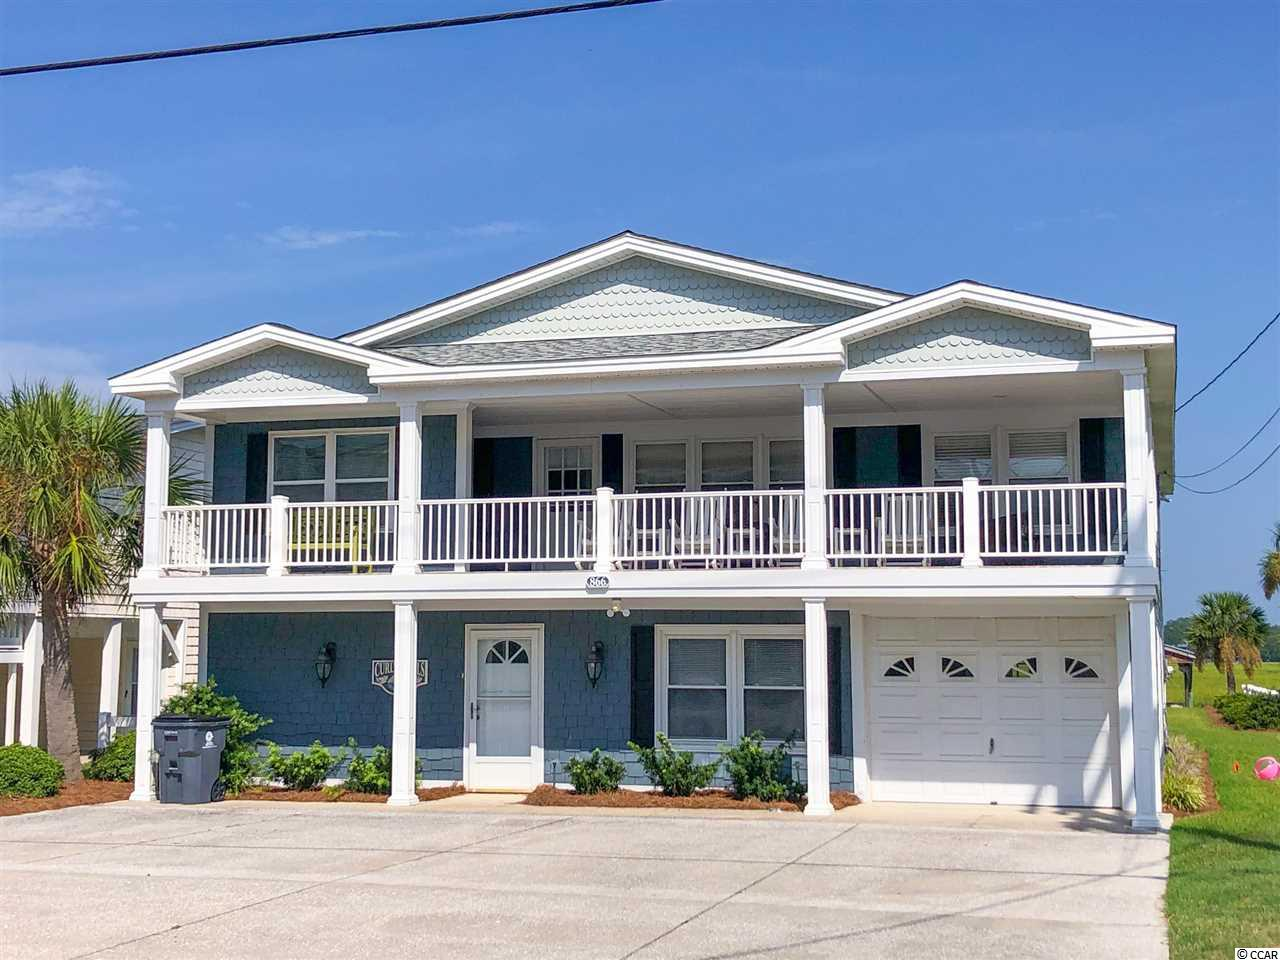 866 South Waccamaw is a bright and happy beach house located eight blocks south of the Garden City Pier. Ocean views can be seen from the front porch and many of the front windows. The back of the house is on the inlet, complete with a dock and boat lift. It is the best of both worlds, filled with views, views, and more views! Inside, enjoy a traditional Carolina beach home floorpan. The center of the house is devoted to enjoying family, while both sides contain the bedrooms and bathrooms. Upstairs there are four bedrooms and three bathrooms. The ground floor offers a large, enclosed area with laundry, entertaining, storage and two bedrooms and a bathroom.